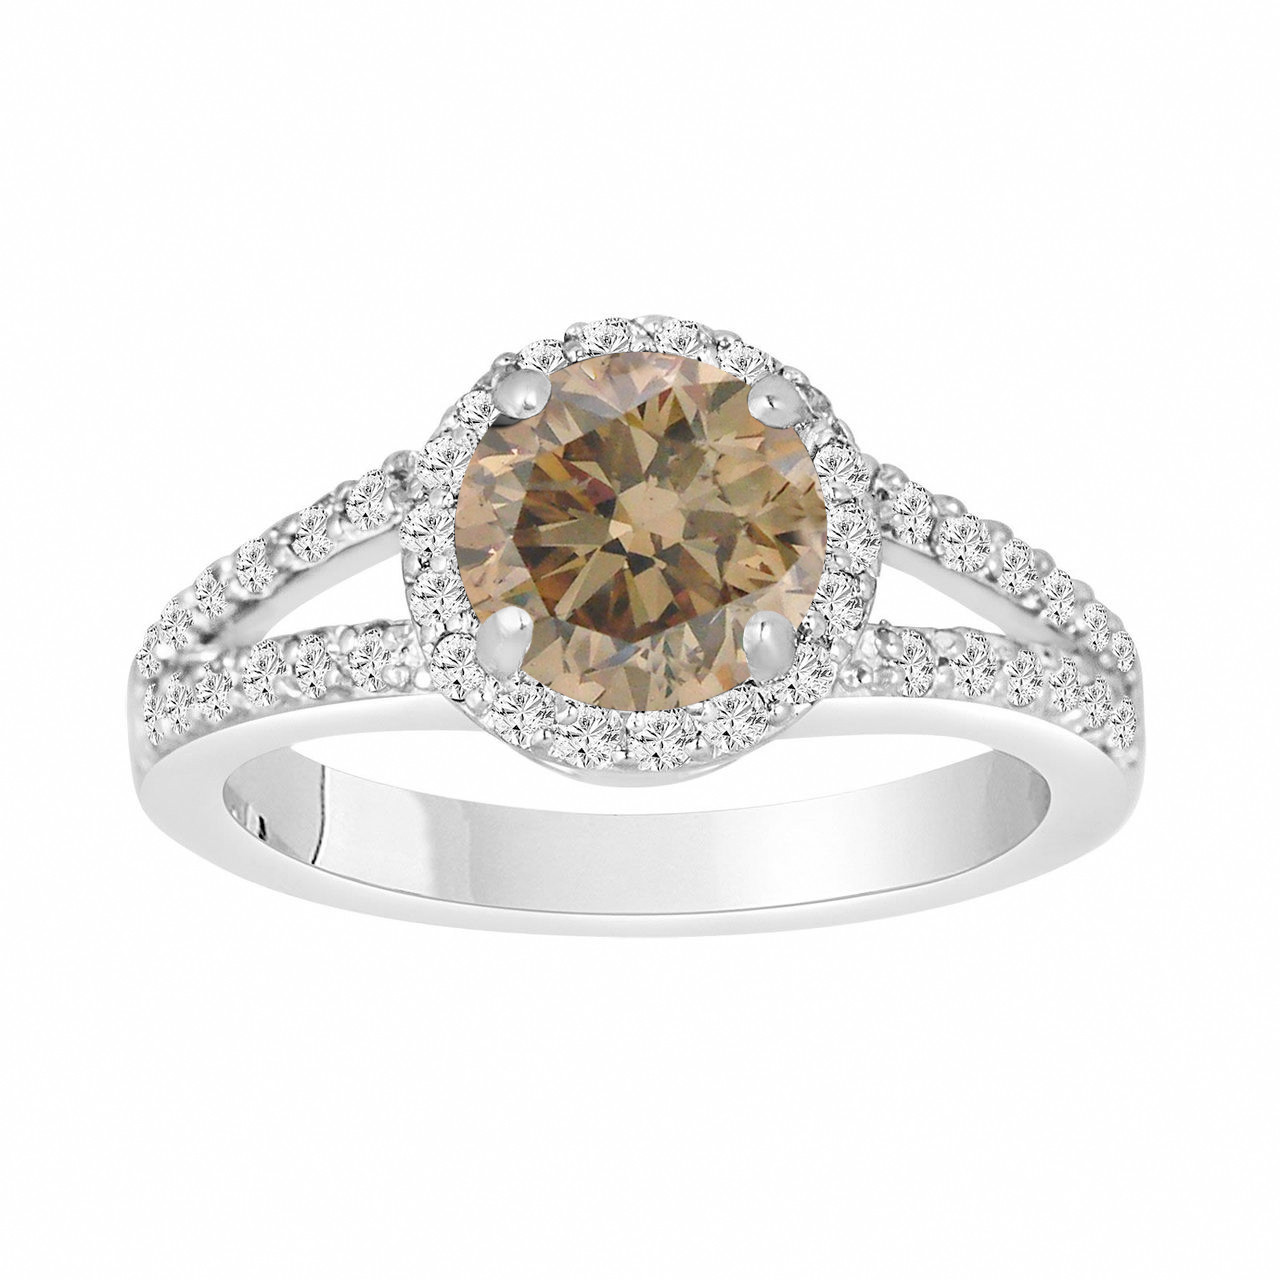 Fancy Brown Champagne Diamond Engagement Ring 172 Carat 14k White